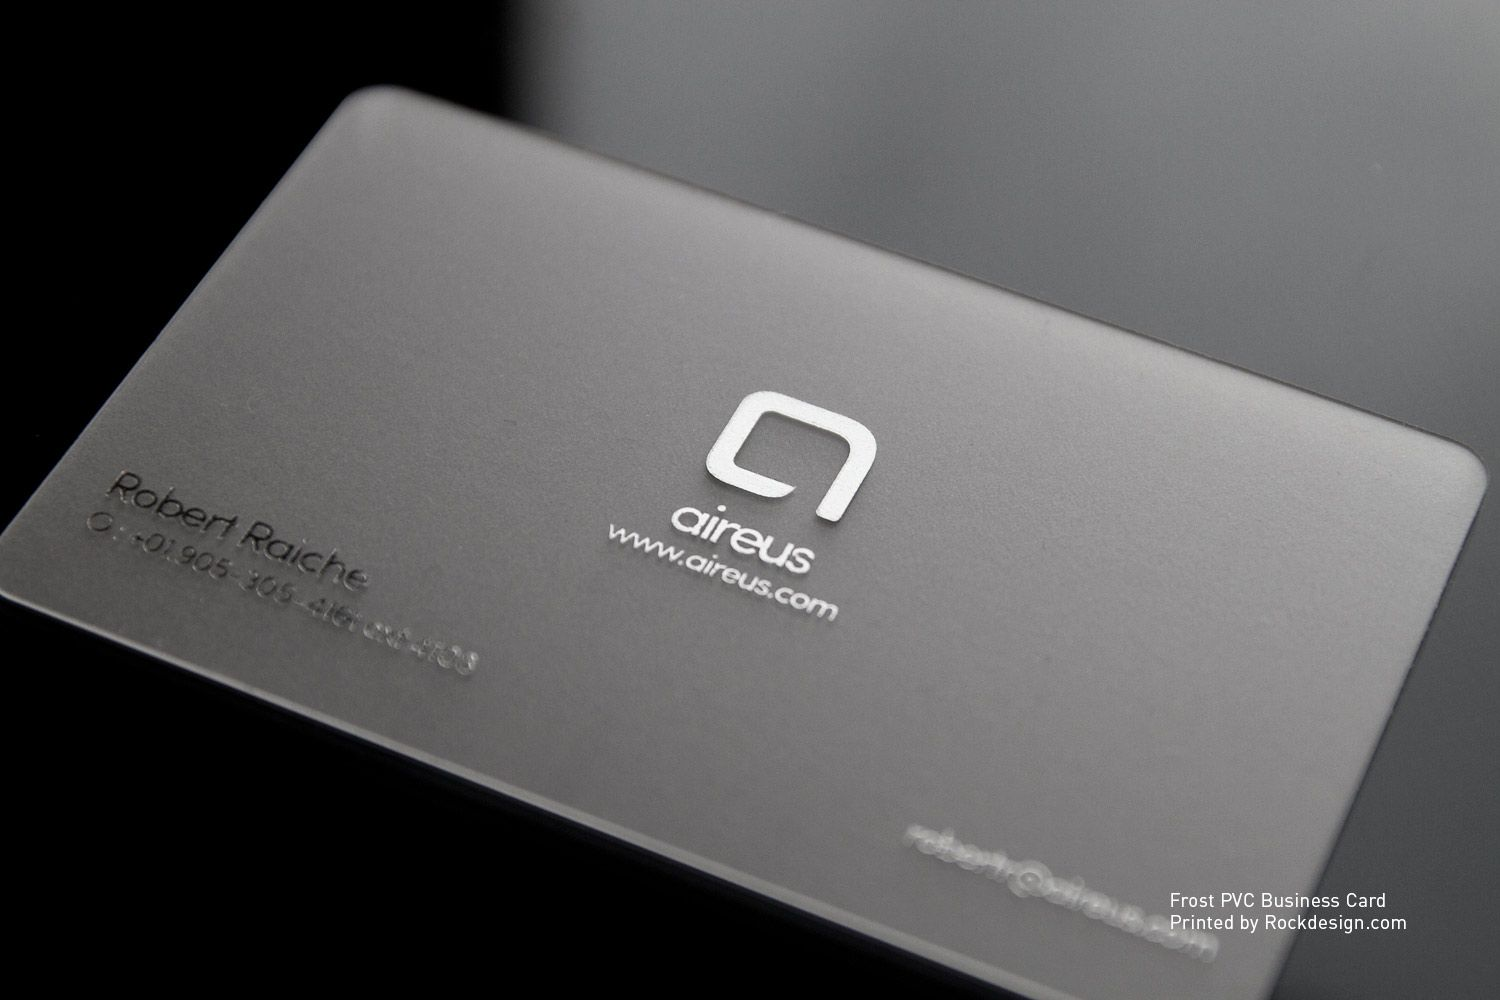 RockDesign.com | Plastic Business Cards | Frost PVC Business Card ...